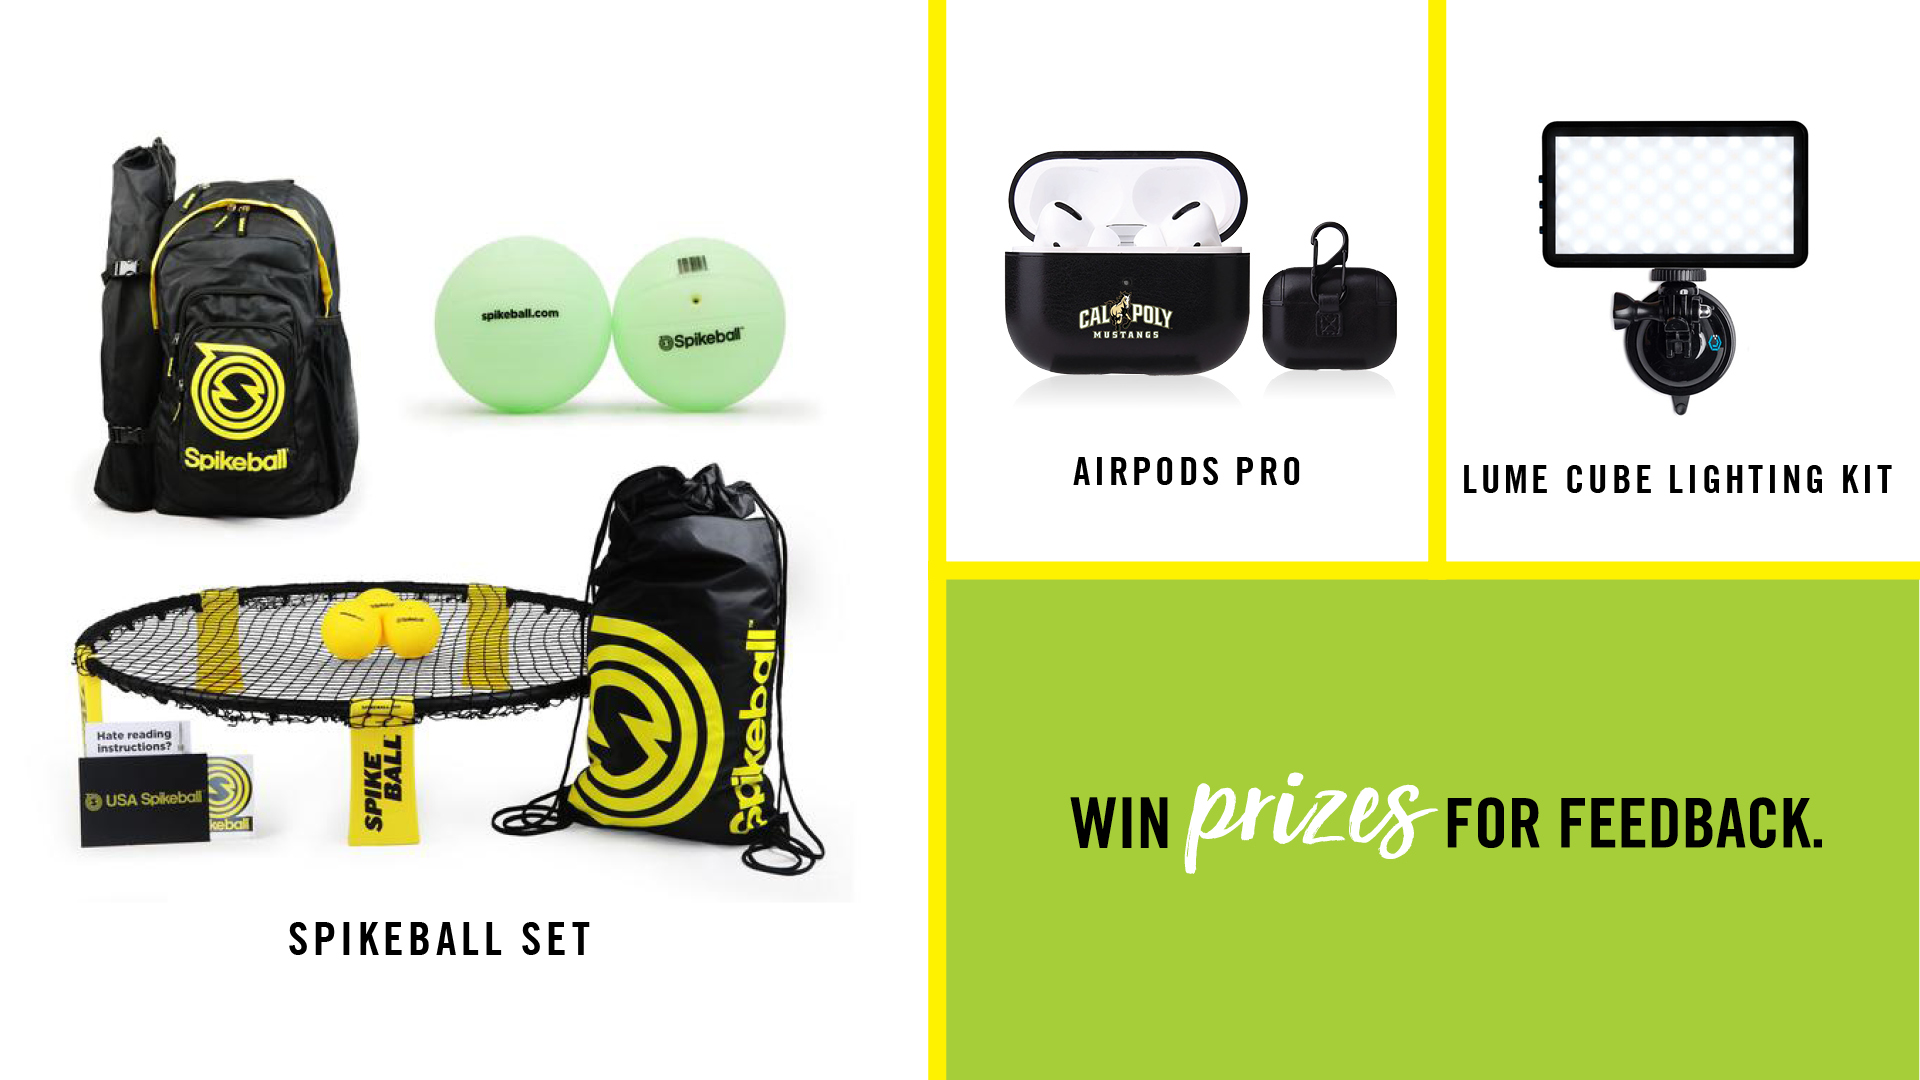 Win Prizes for Feedback including a spikeball set, airpods pro and Lume Cube Lighting kit